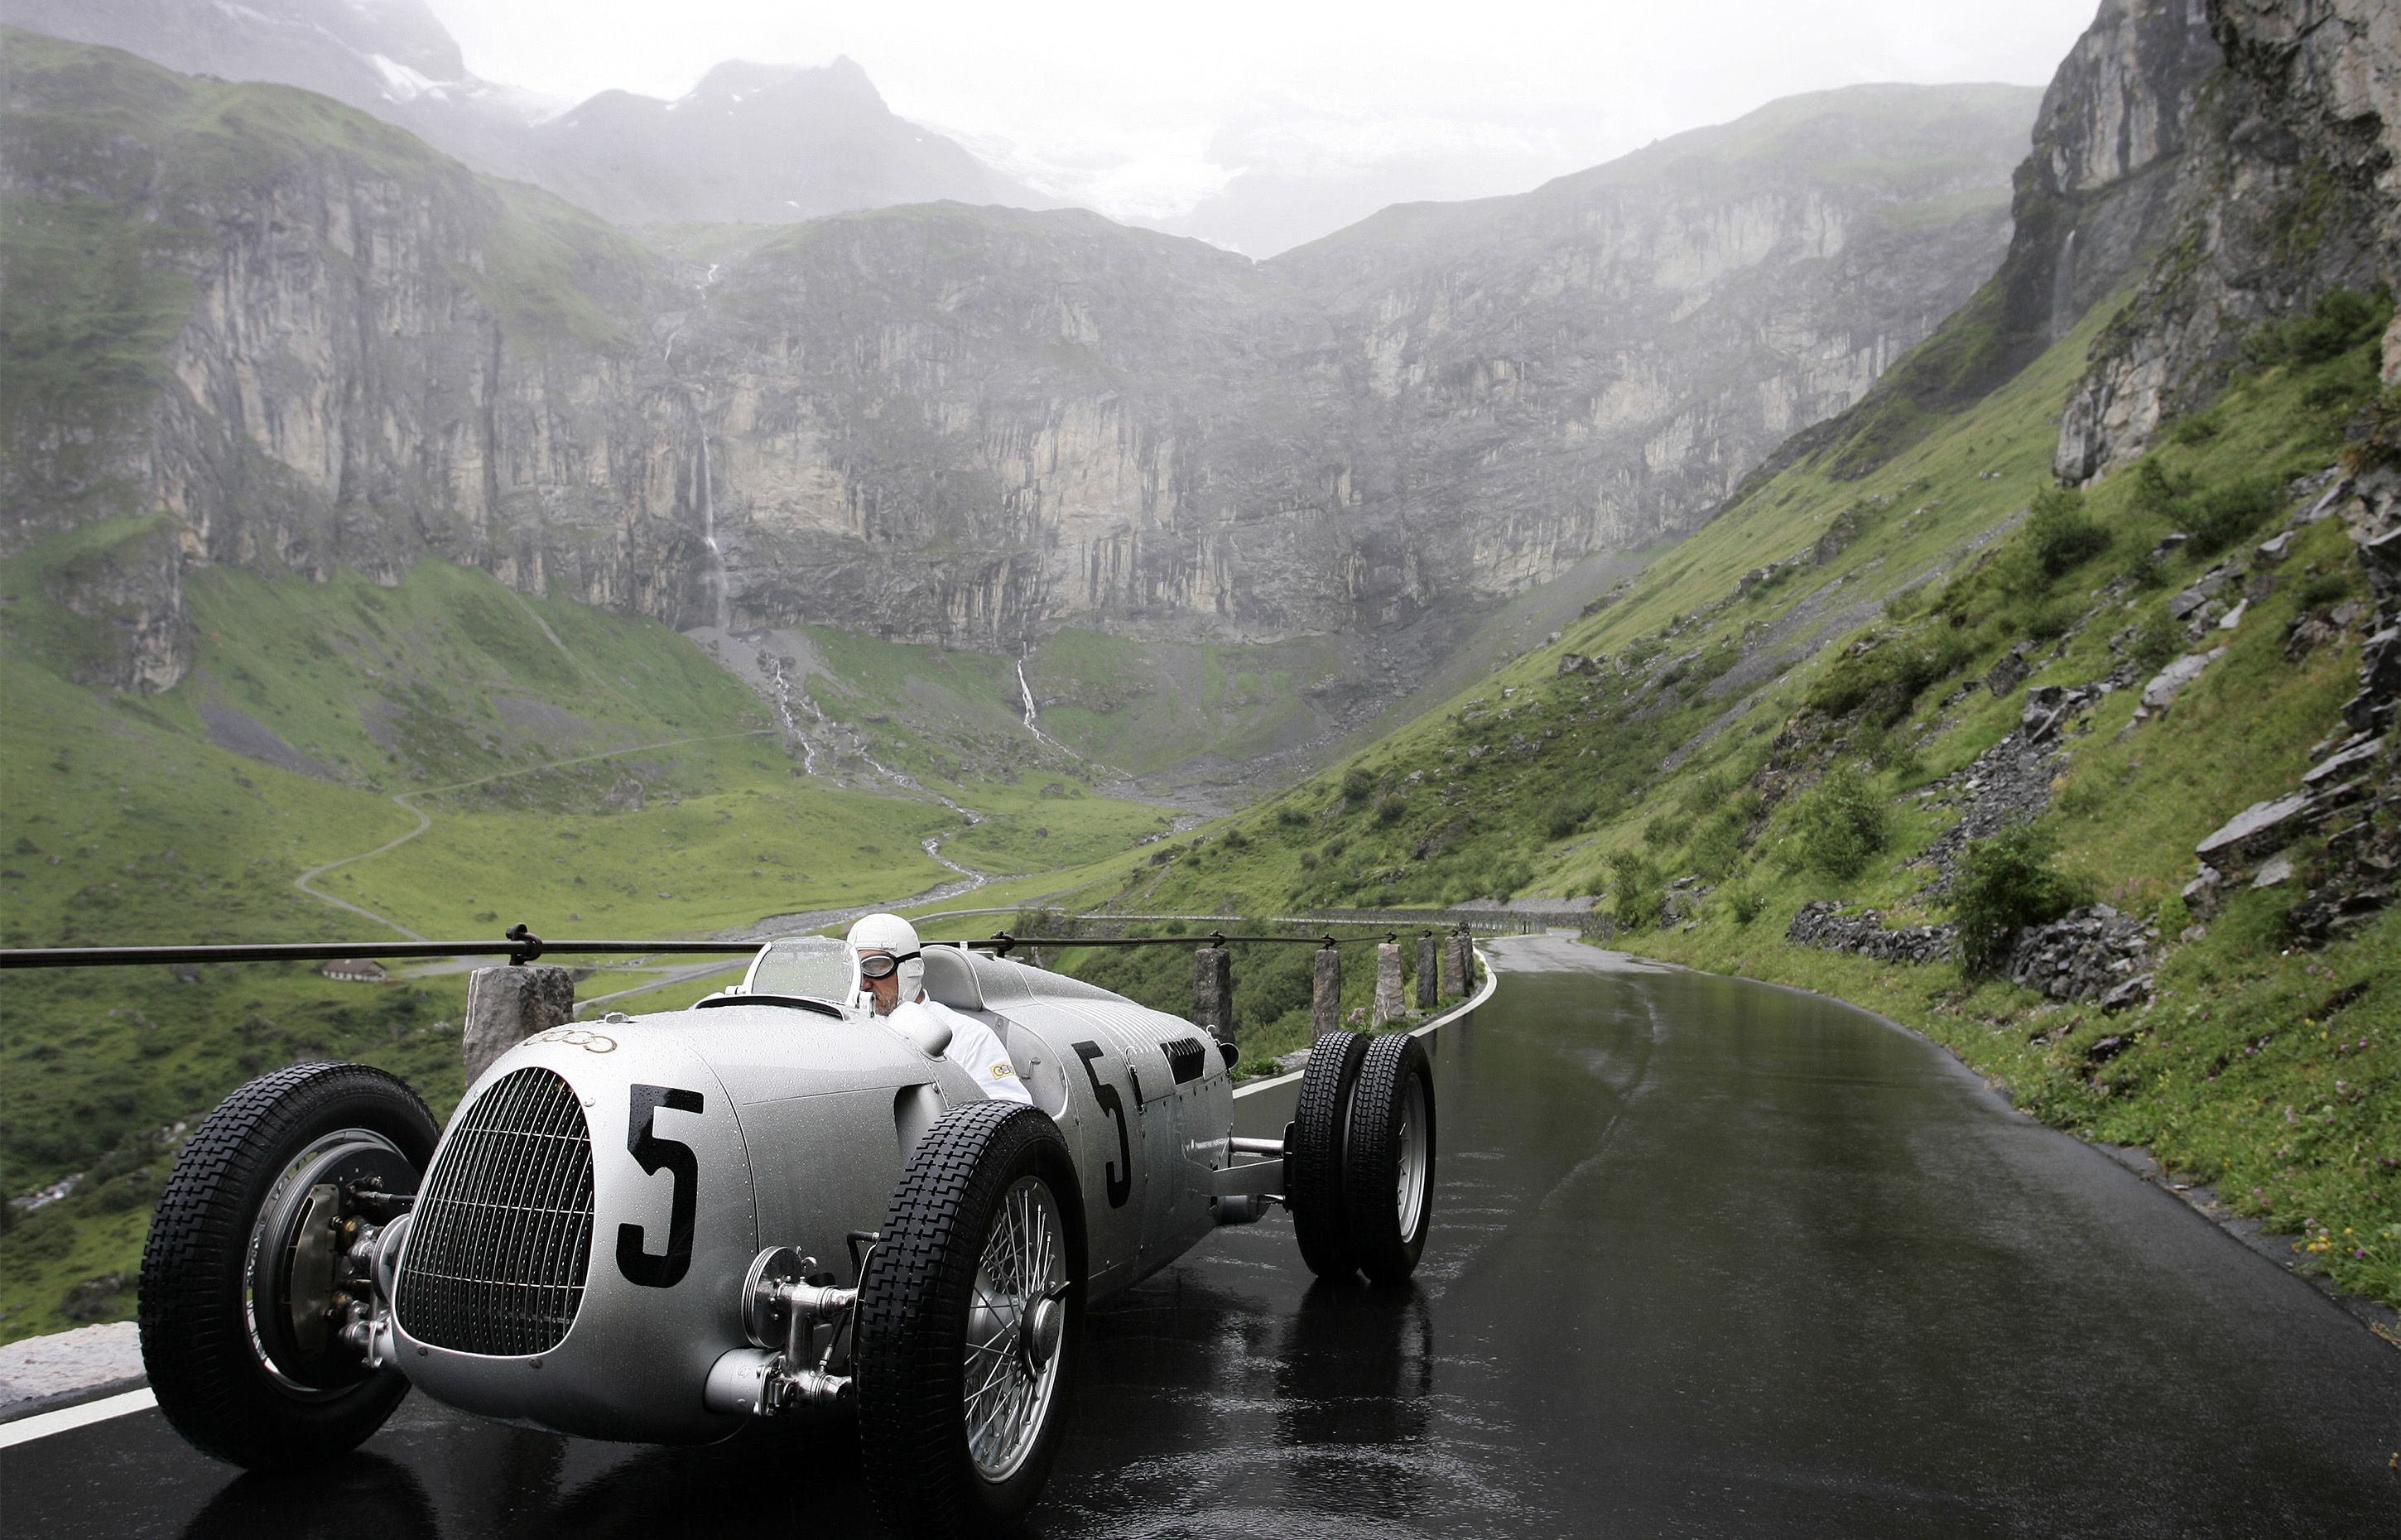 Klausen Pass, Switzerland - Classic 1937 Auto Union C-type races the Klausen Pass, Switzerland. The best racers in the world came together every year from 1922 to 1934 to race the Klausen Pass. Past performances by historic racers included Caracciola, Stuck, Nuvolari, and Chiron.